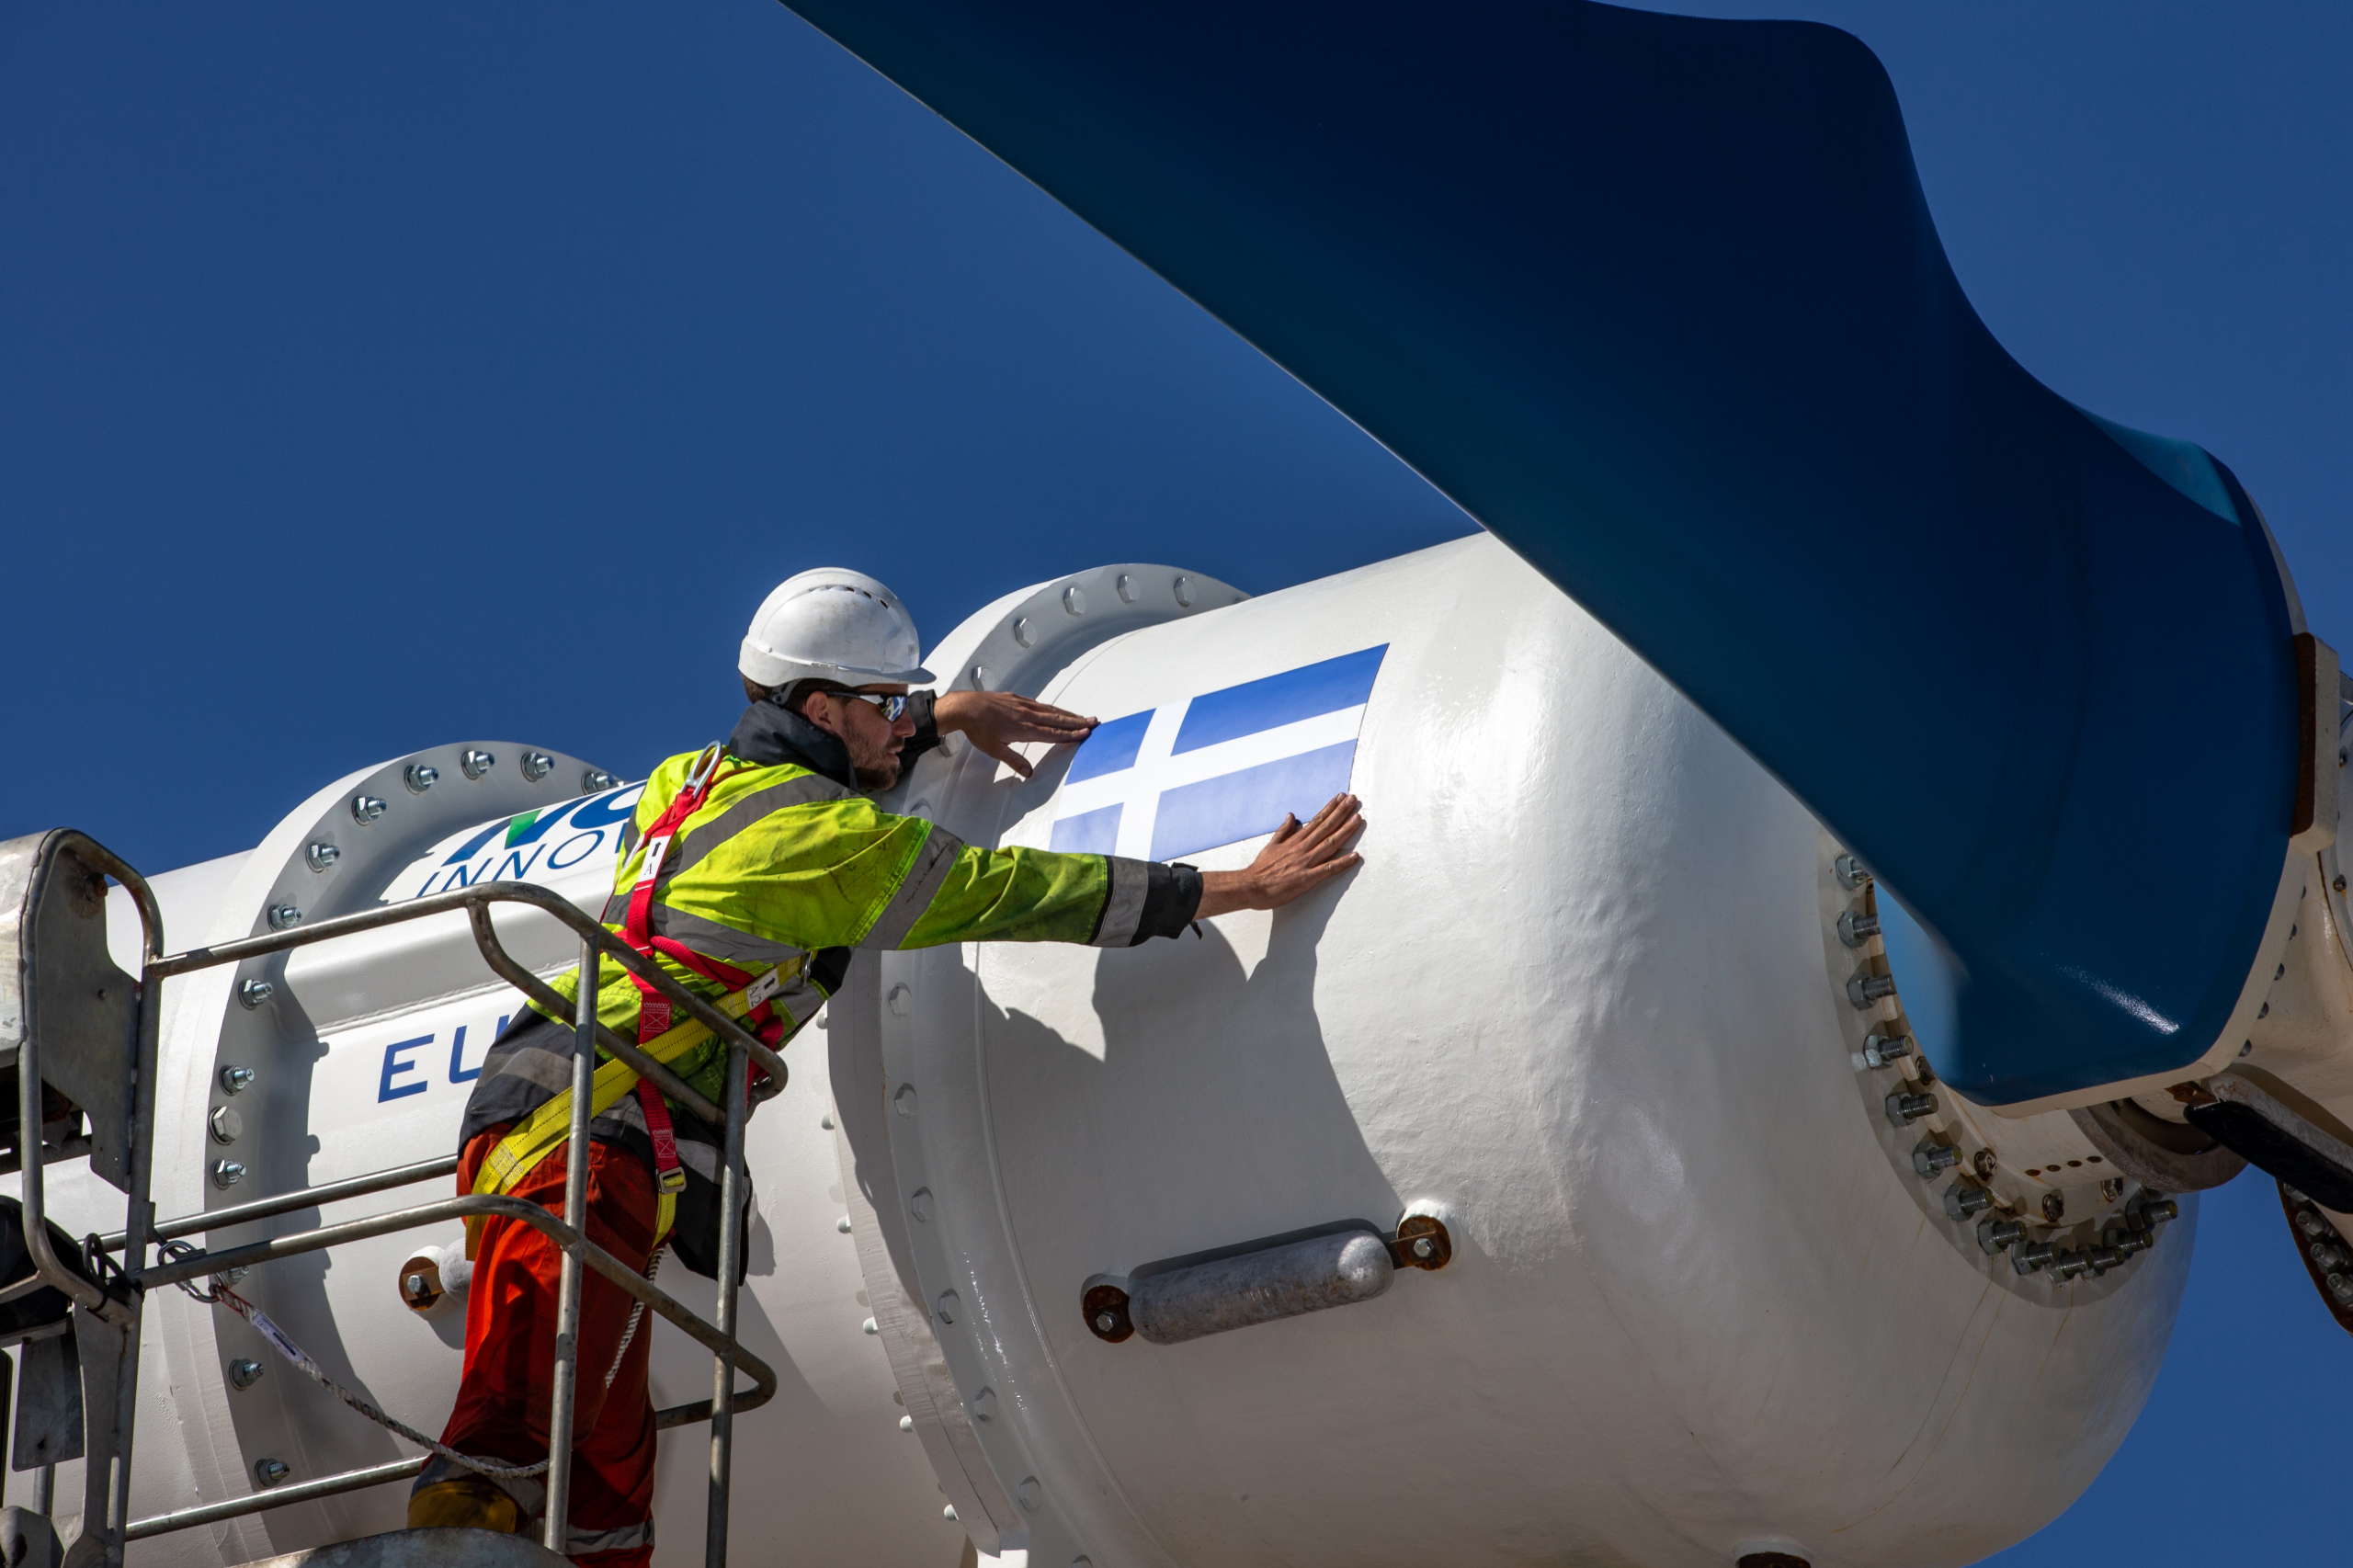 Adding the Shetland flag to the turbine